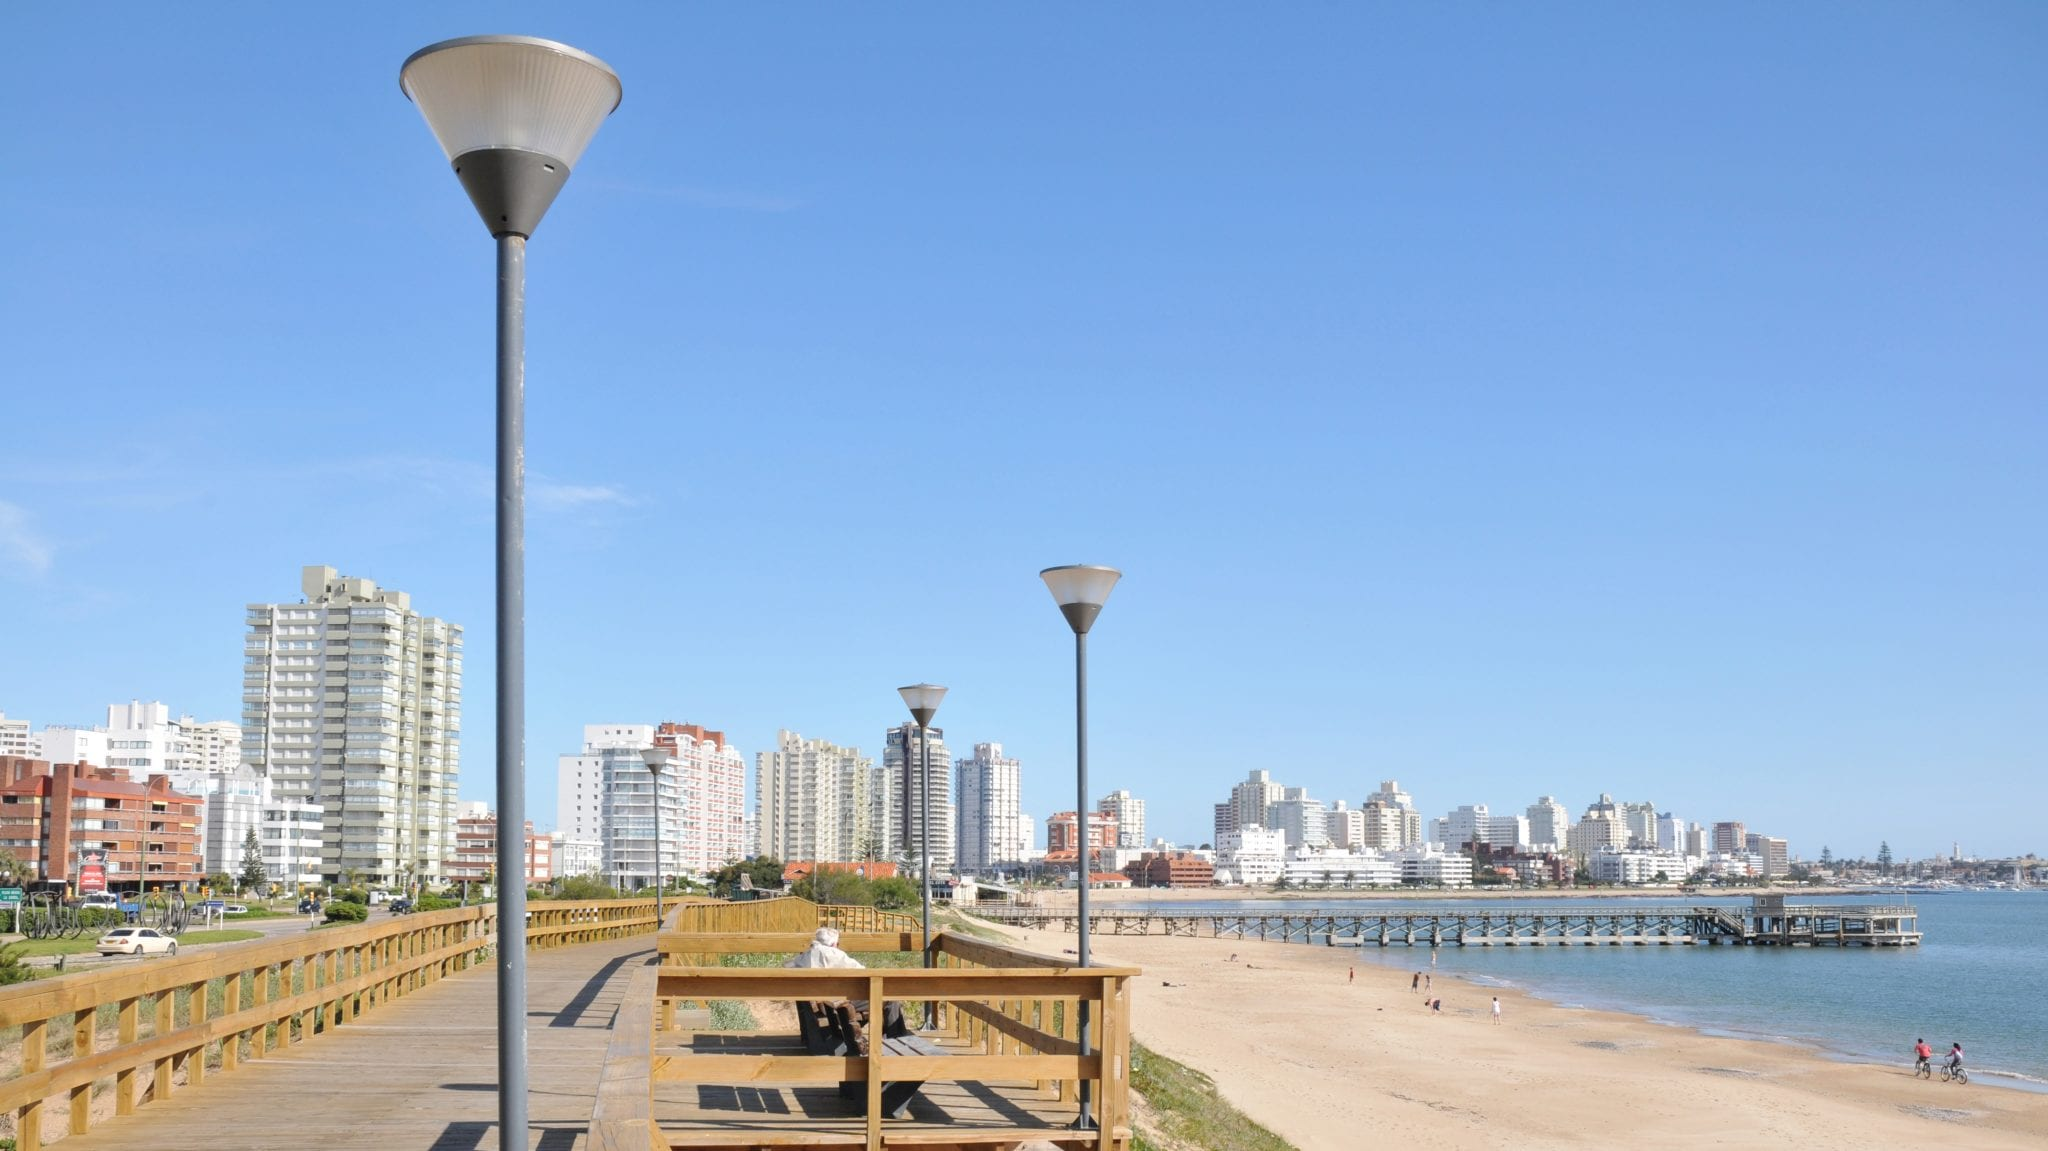 A view of Punta del Este in Uruguay